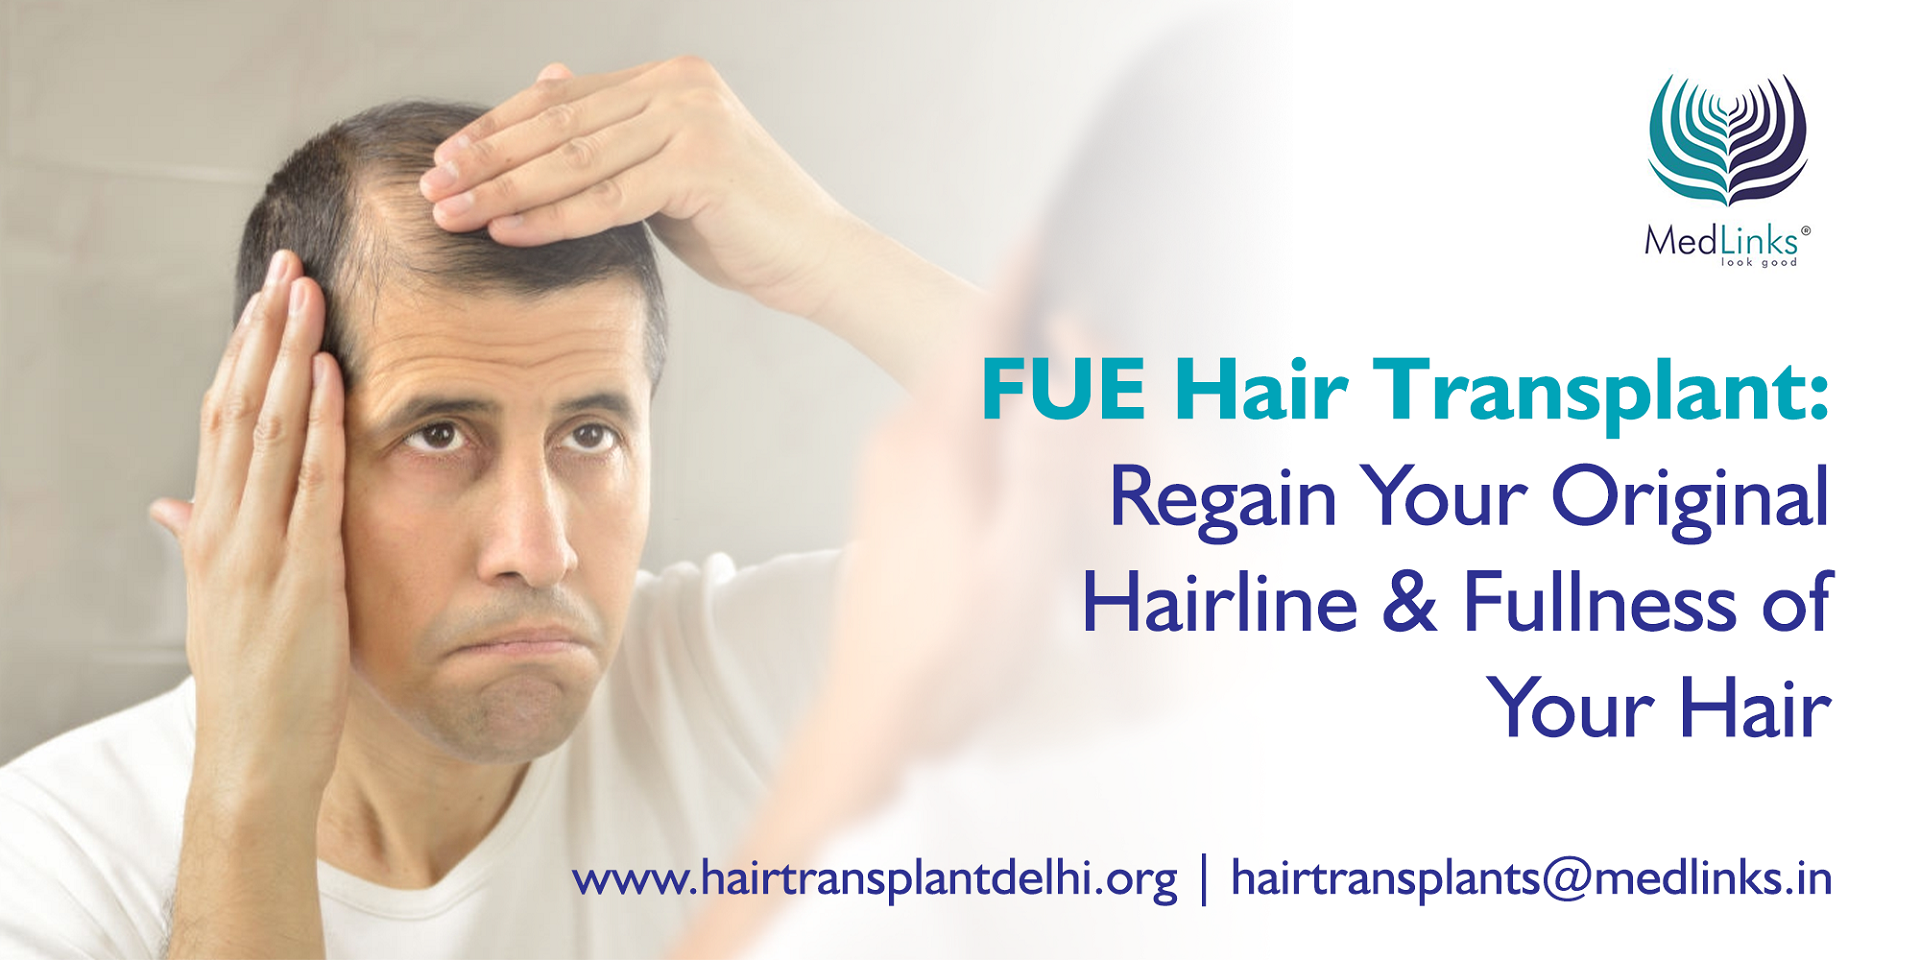 FUE Hair Transplant: Is it the best option?